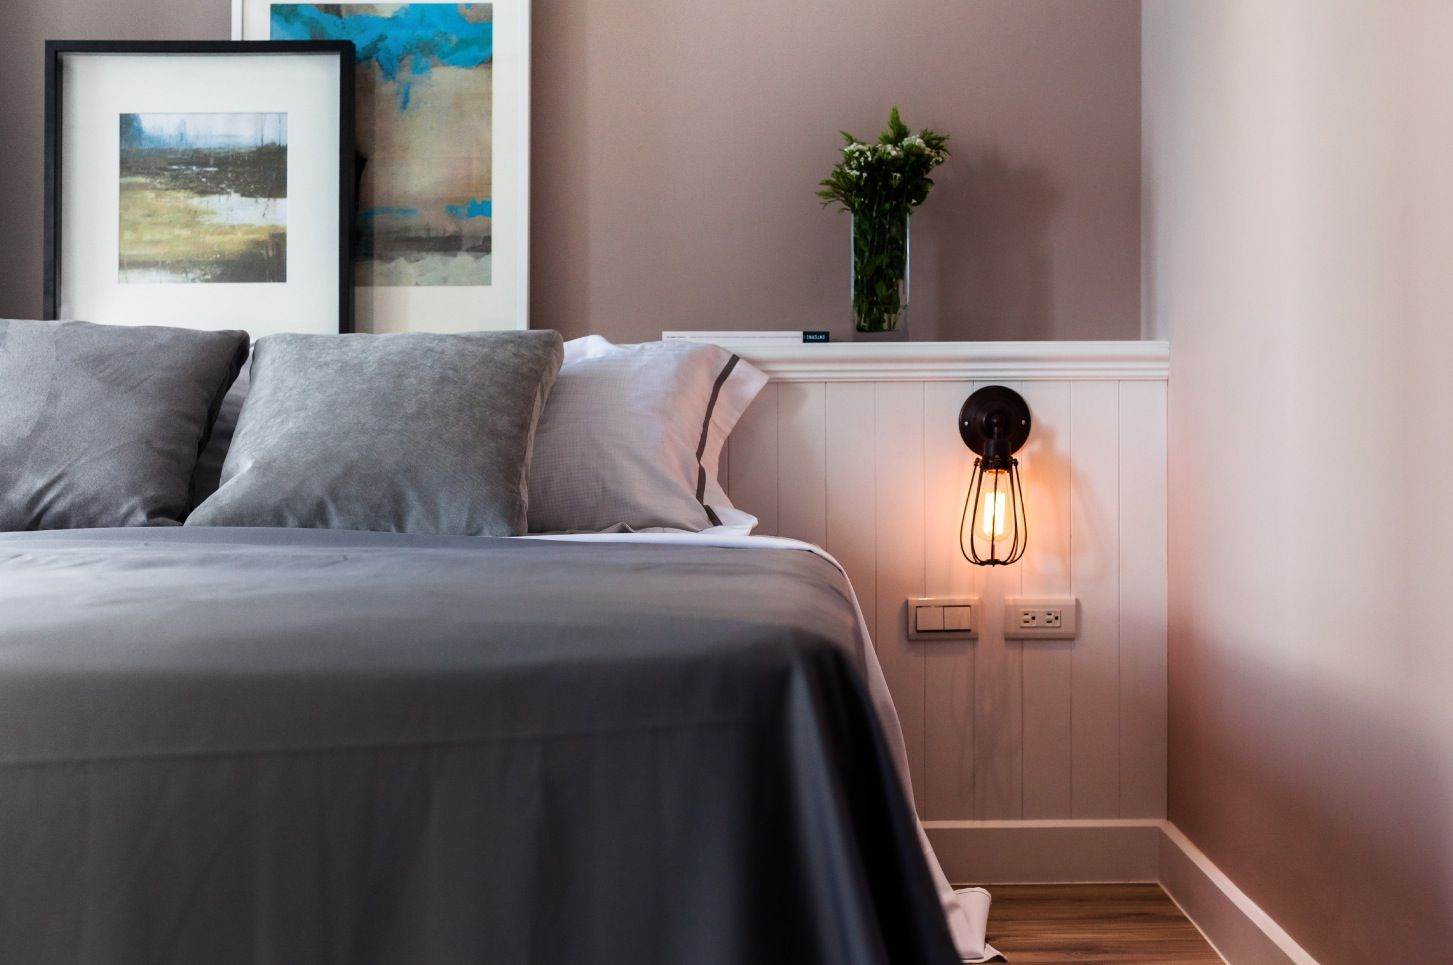 http://www.tuiwoa.com/wp-content/uploads/2014/02/contemporary-Apartment-bedroom-interior-decor-with-bedside-bulb-lamp-and-grey-duvet-comfort...